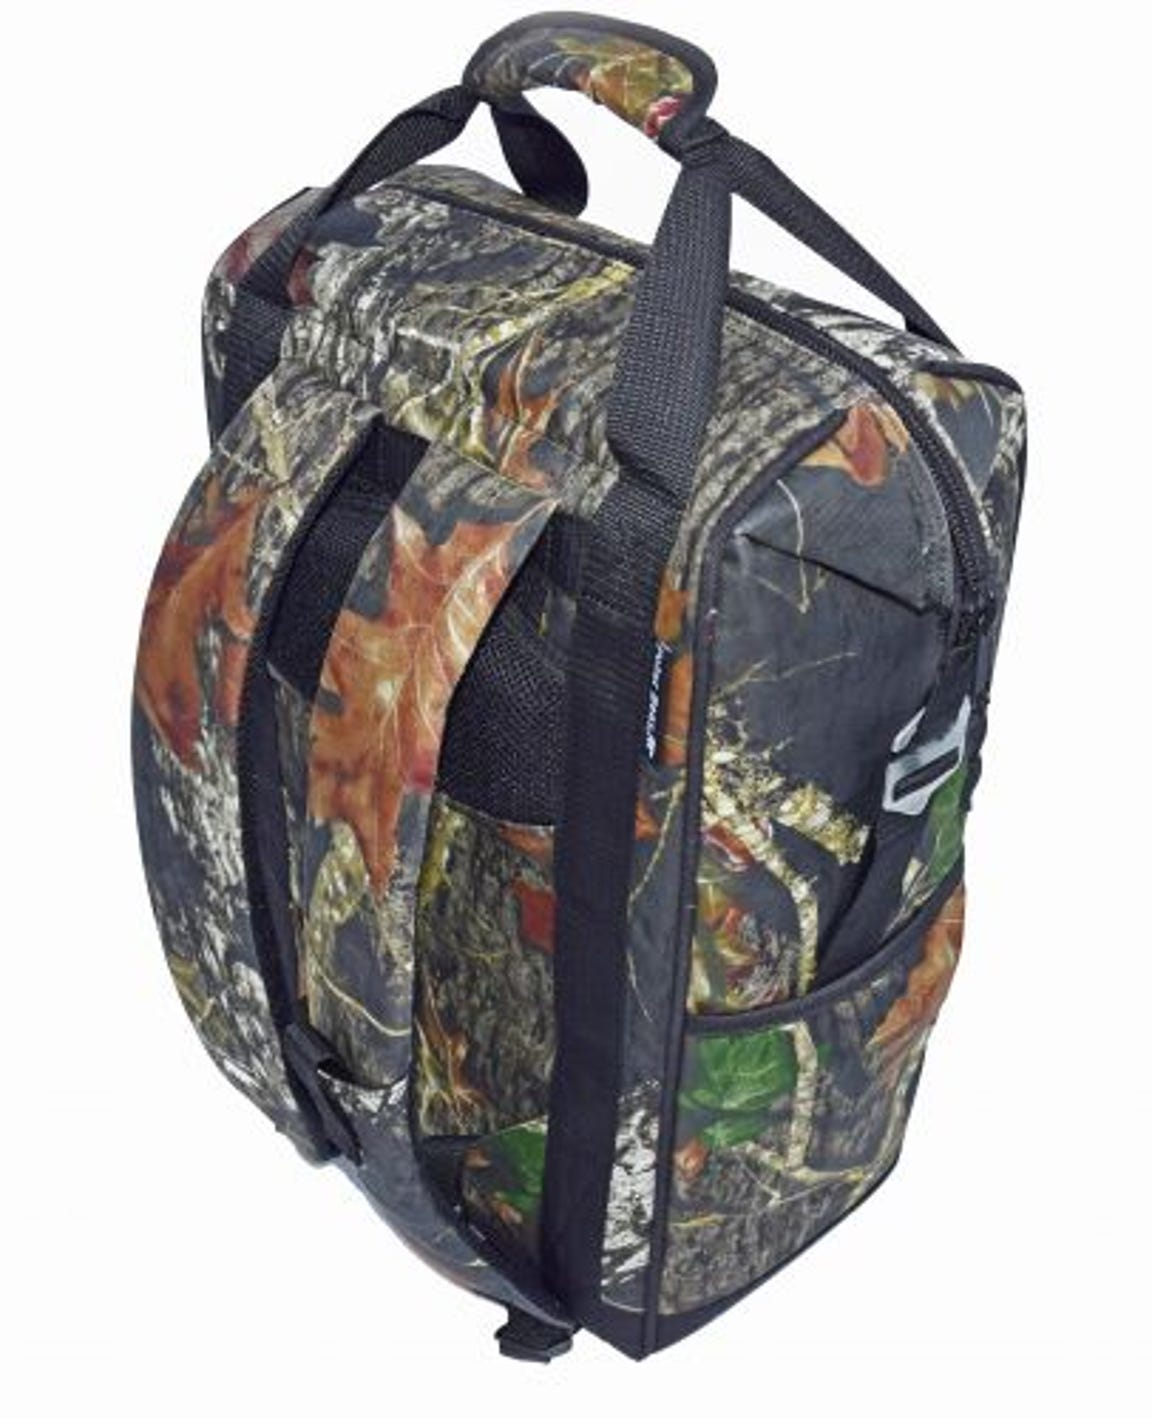 Polar Bear soft-sided coolers come in many sizes and colors, including this camo backpack cooler.